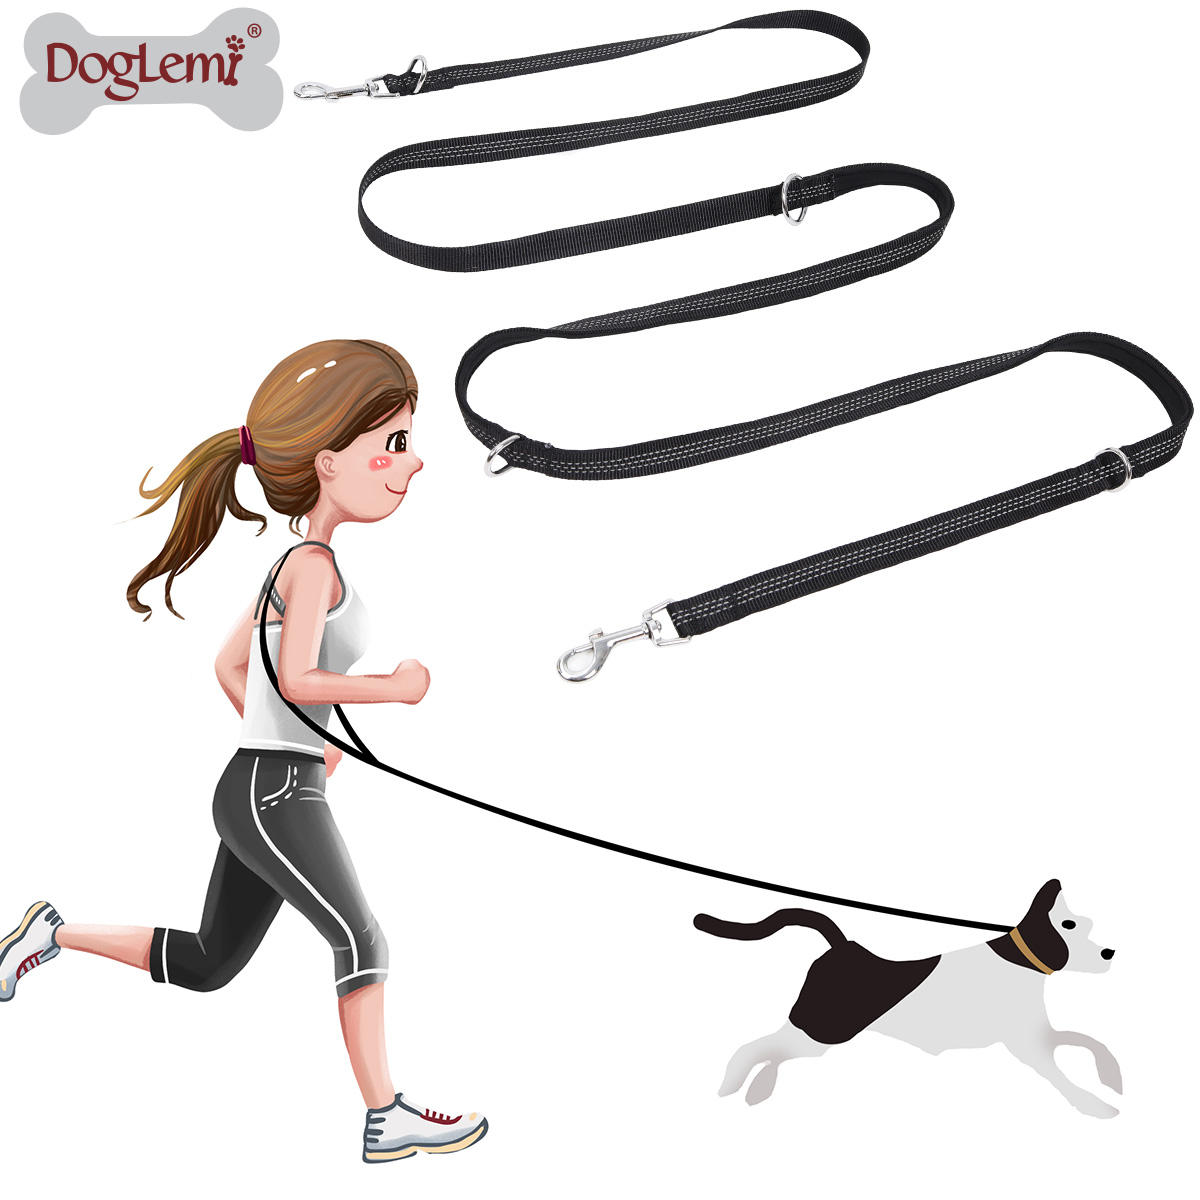 Multifunctional Dog Training Leash 3 meters Nylon Double Leash Hands free Pet Lead with Padded Handles